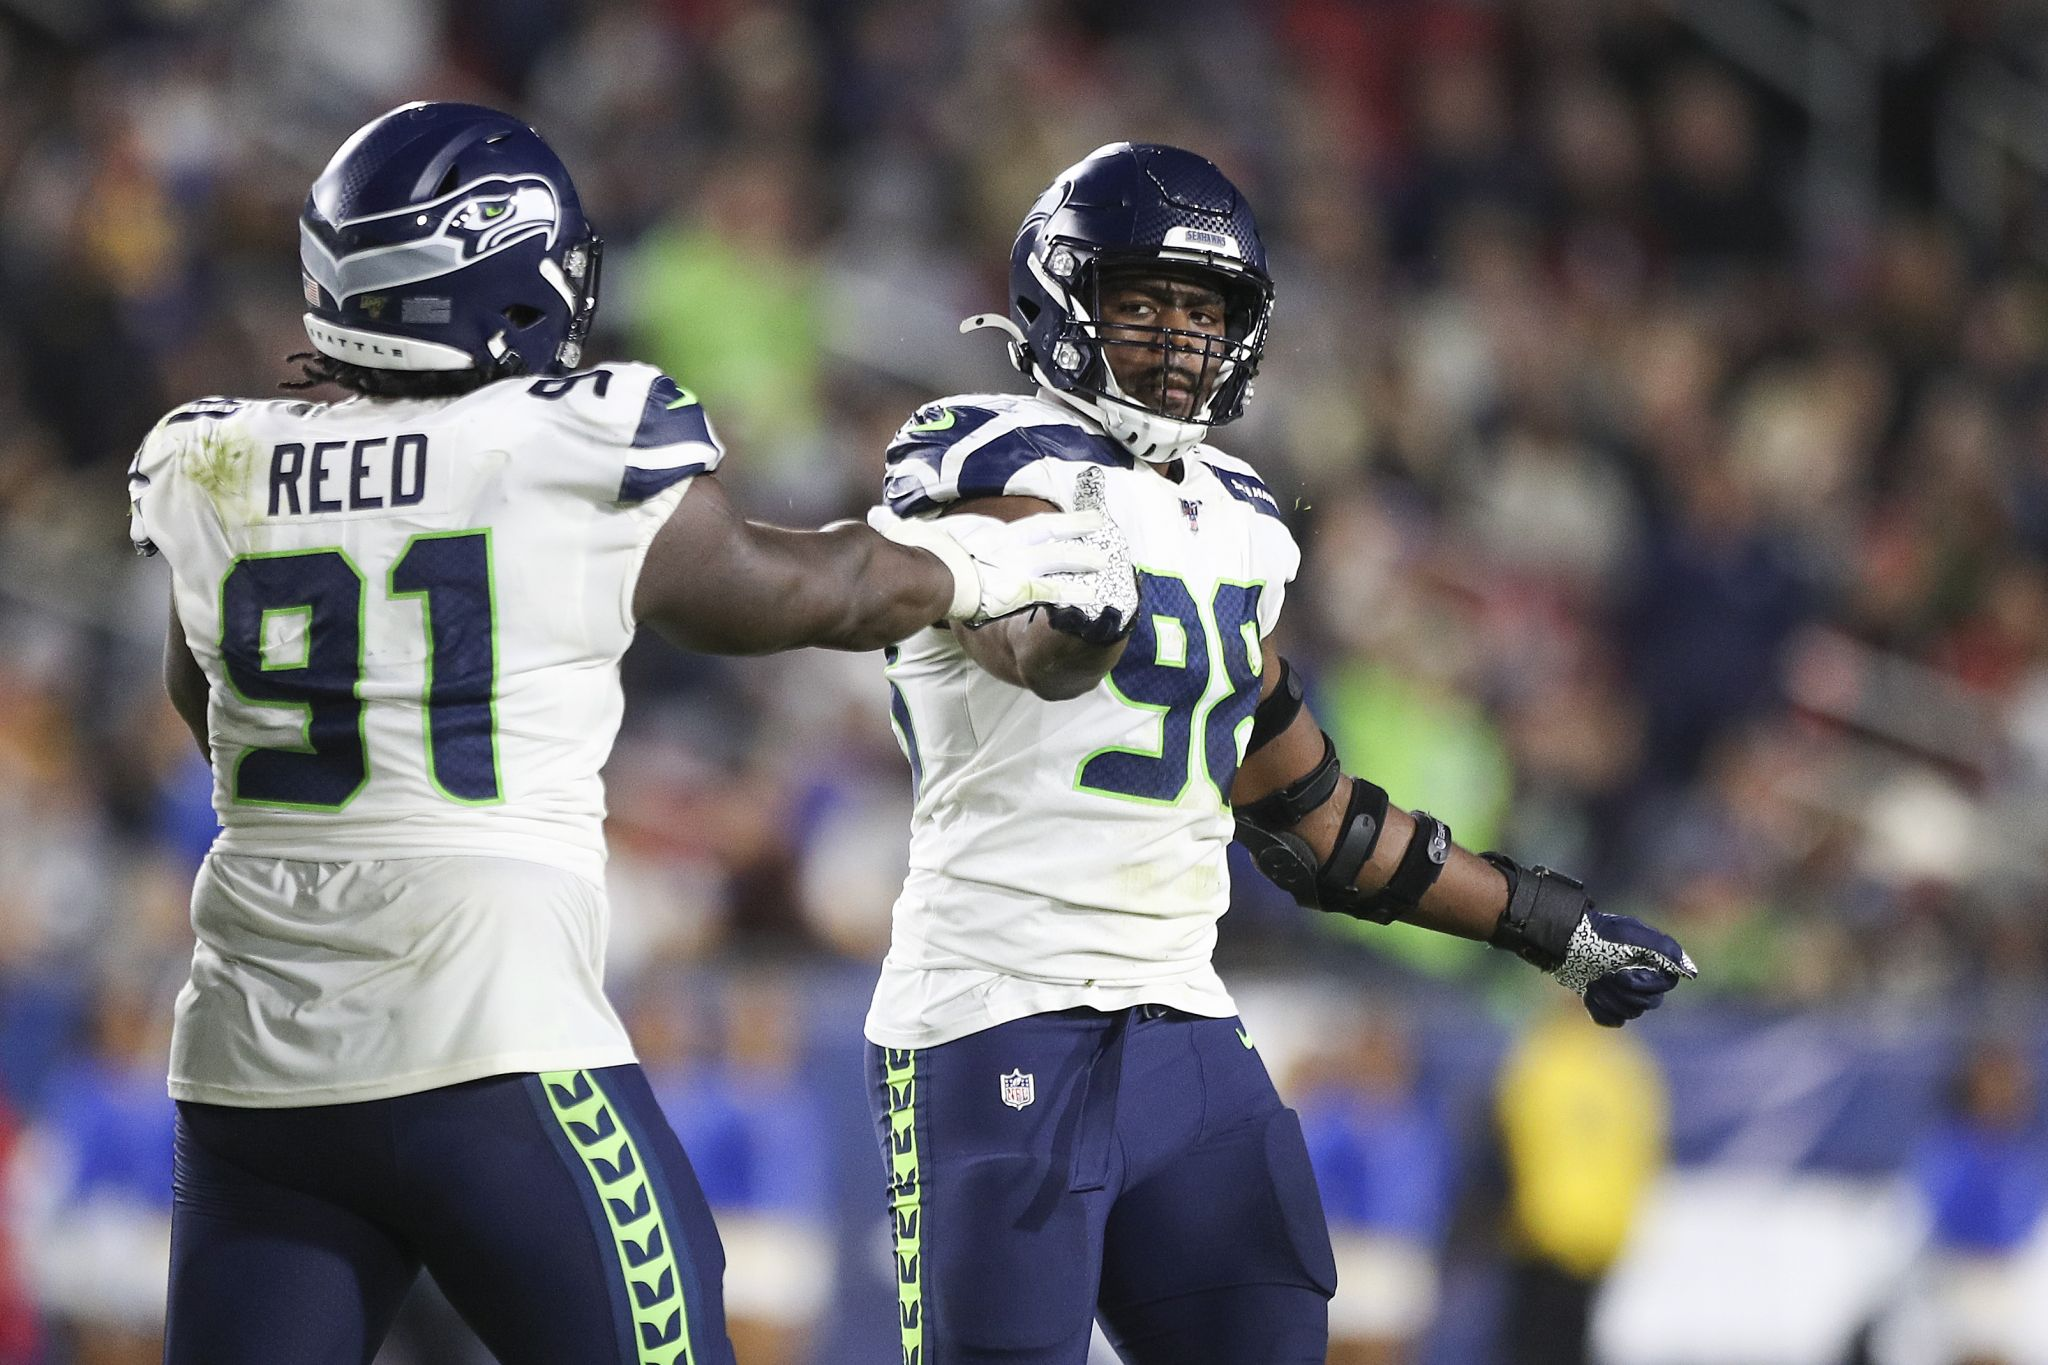 Report: Seattle Seahawks' defensive line rated worst in NFL entering 2020 season